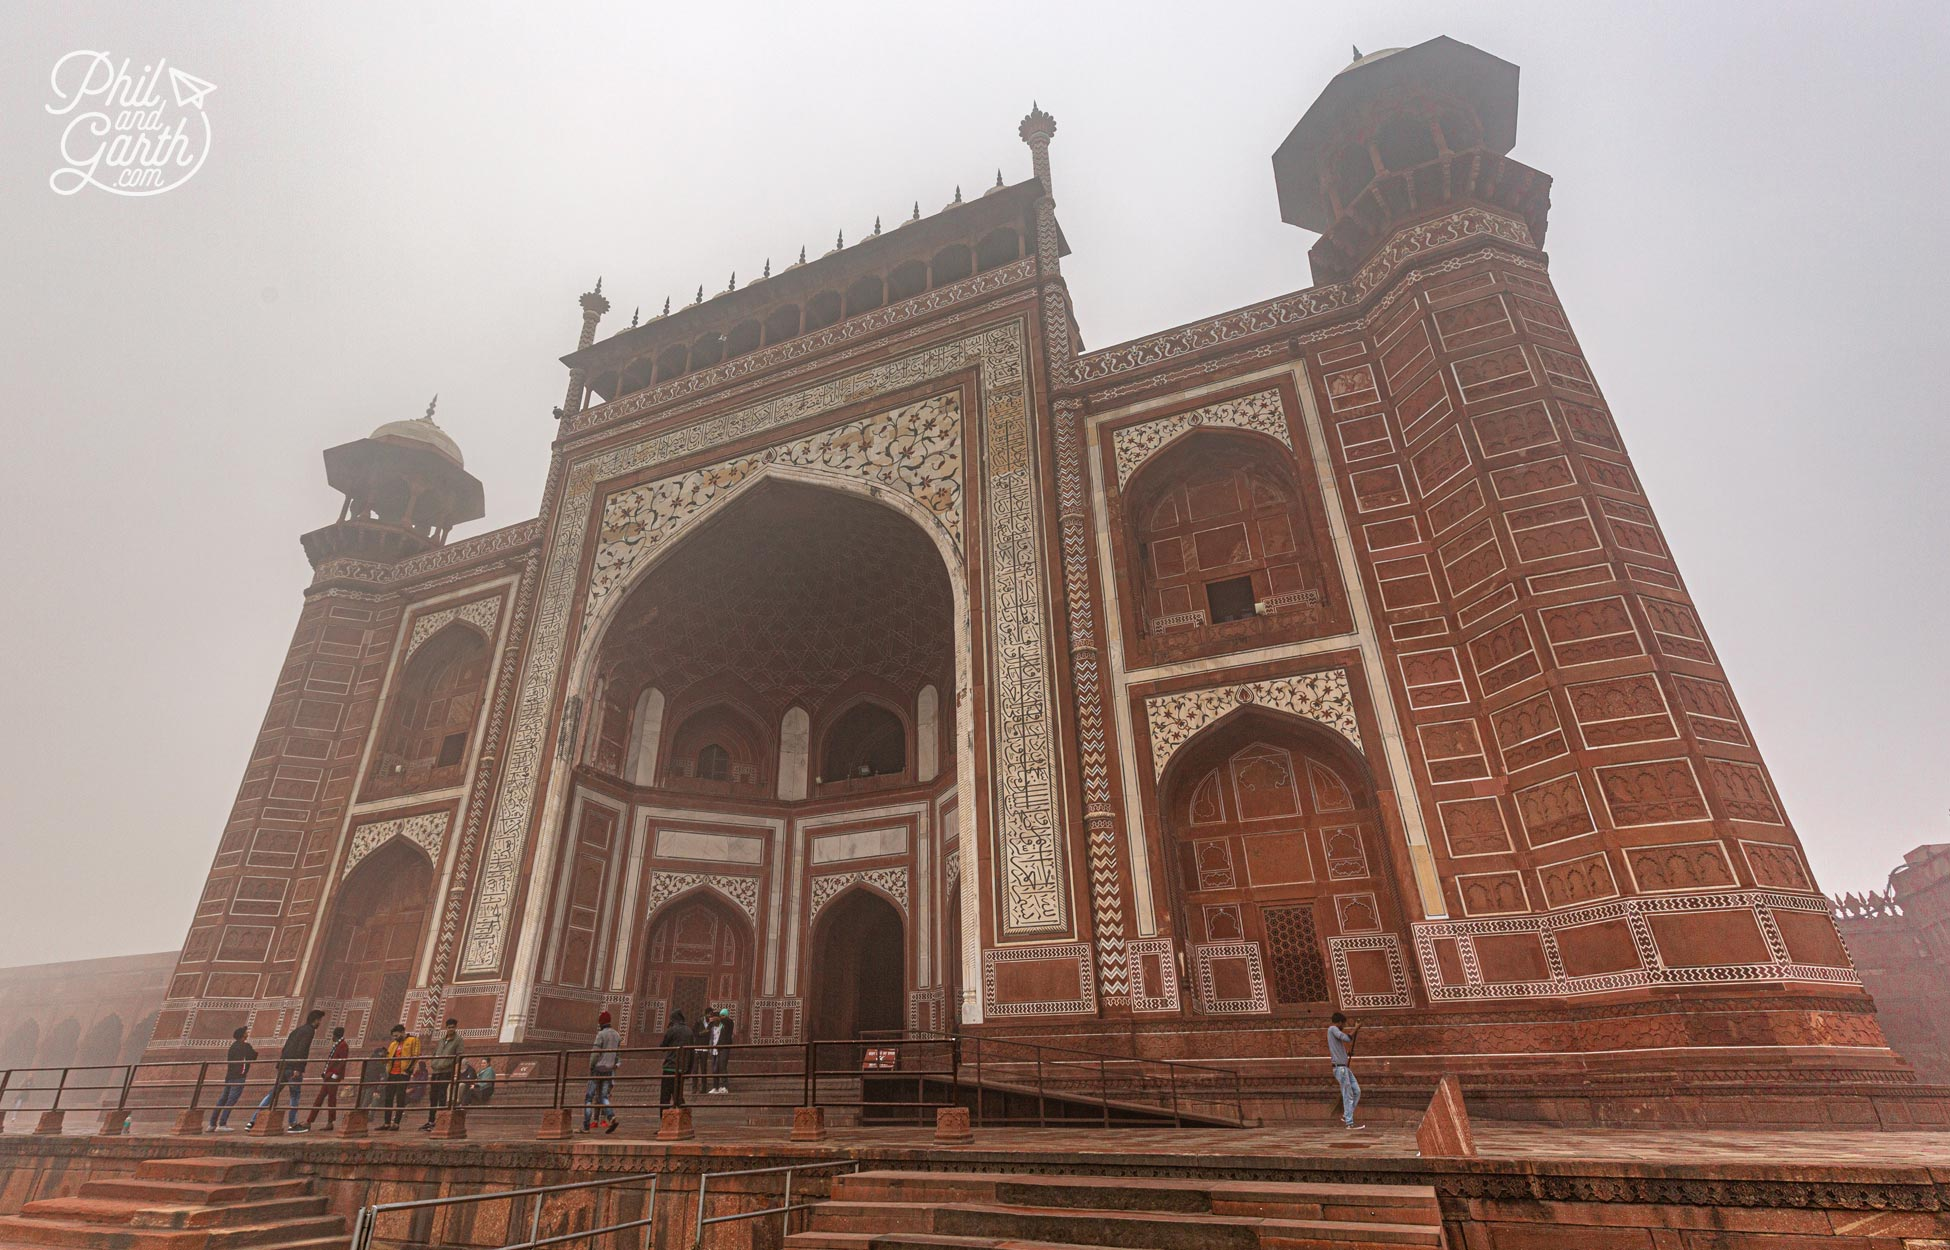 The north gate entrance and exit to the Taj Mahal